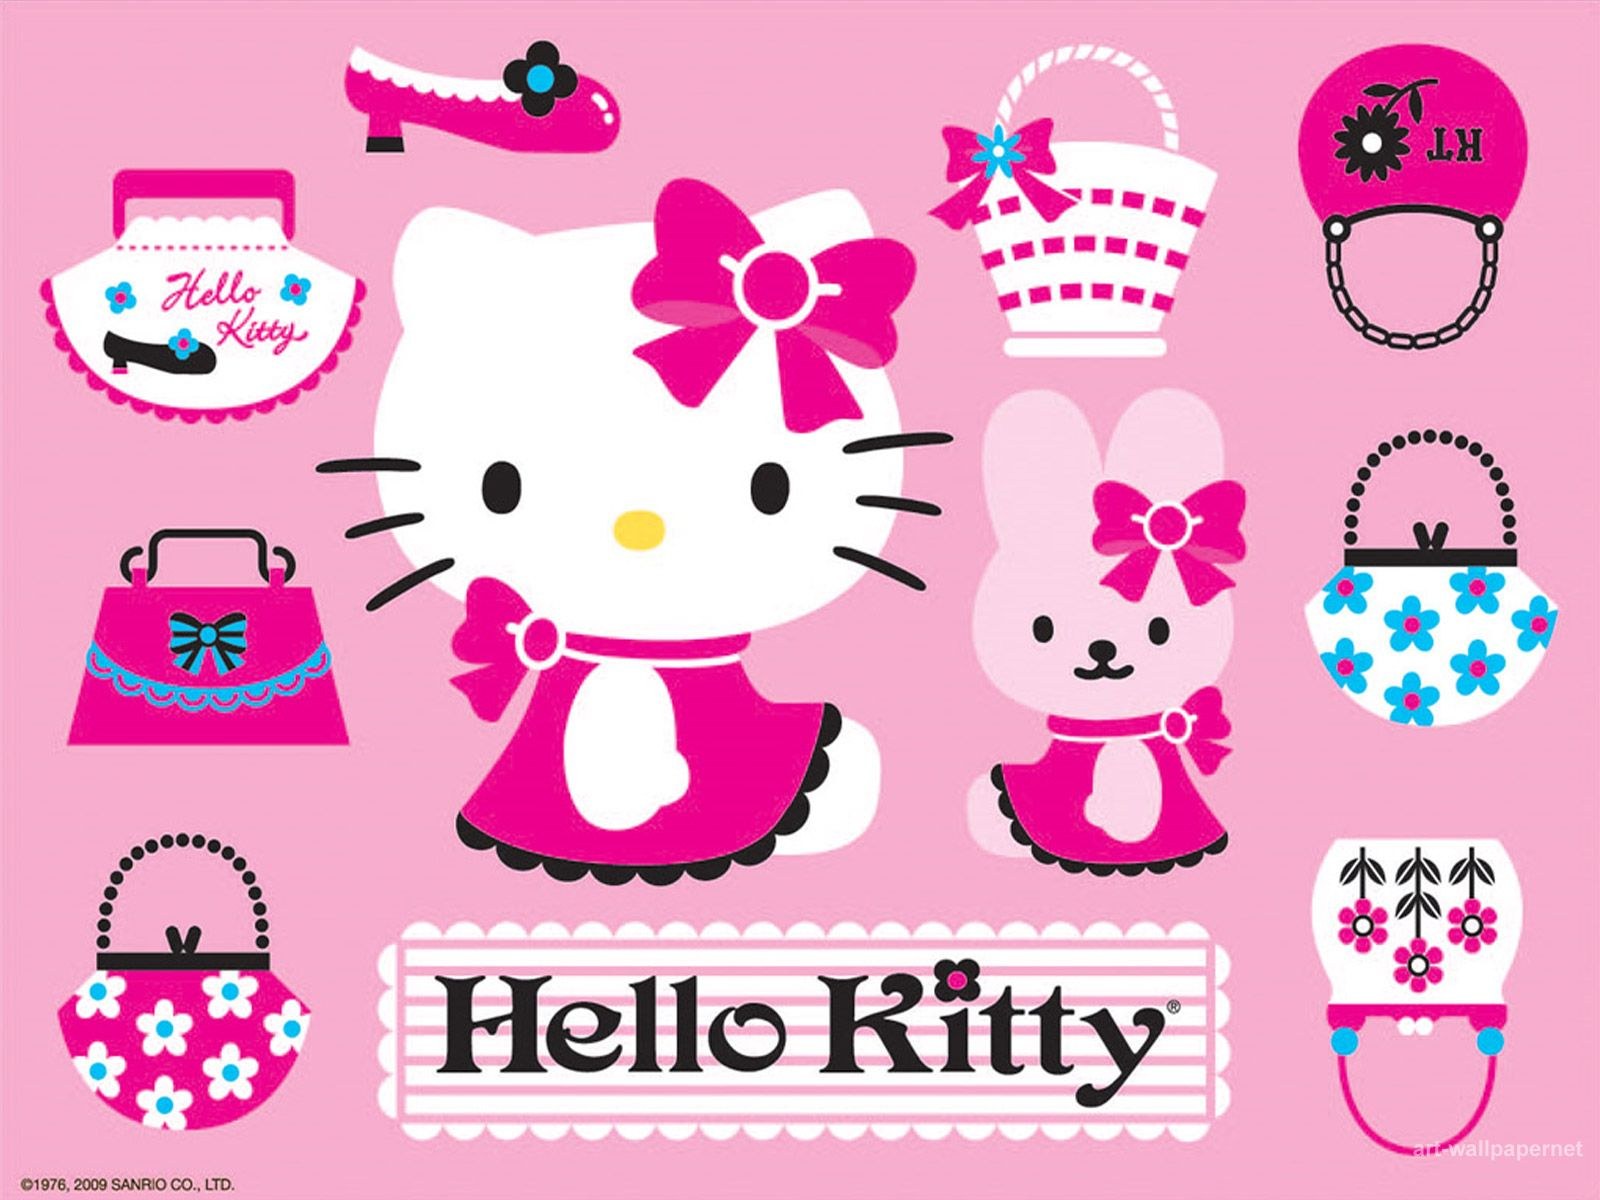 Download hello kitty poster art free wallpaper 1600x1200 full hd download hello kitty poster art free wallpaper 1600x1200 full hd voltagebd Choice Image